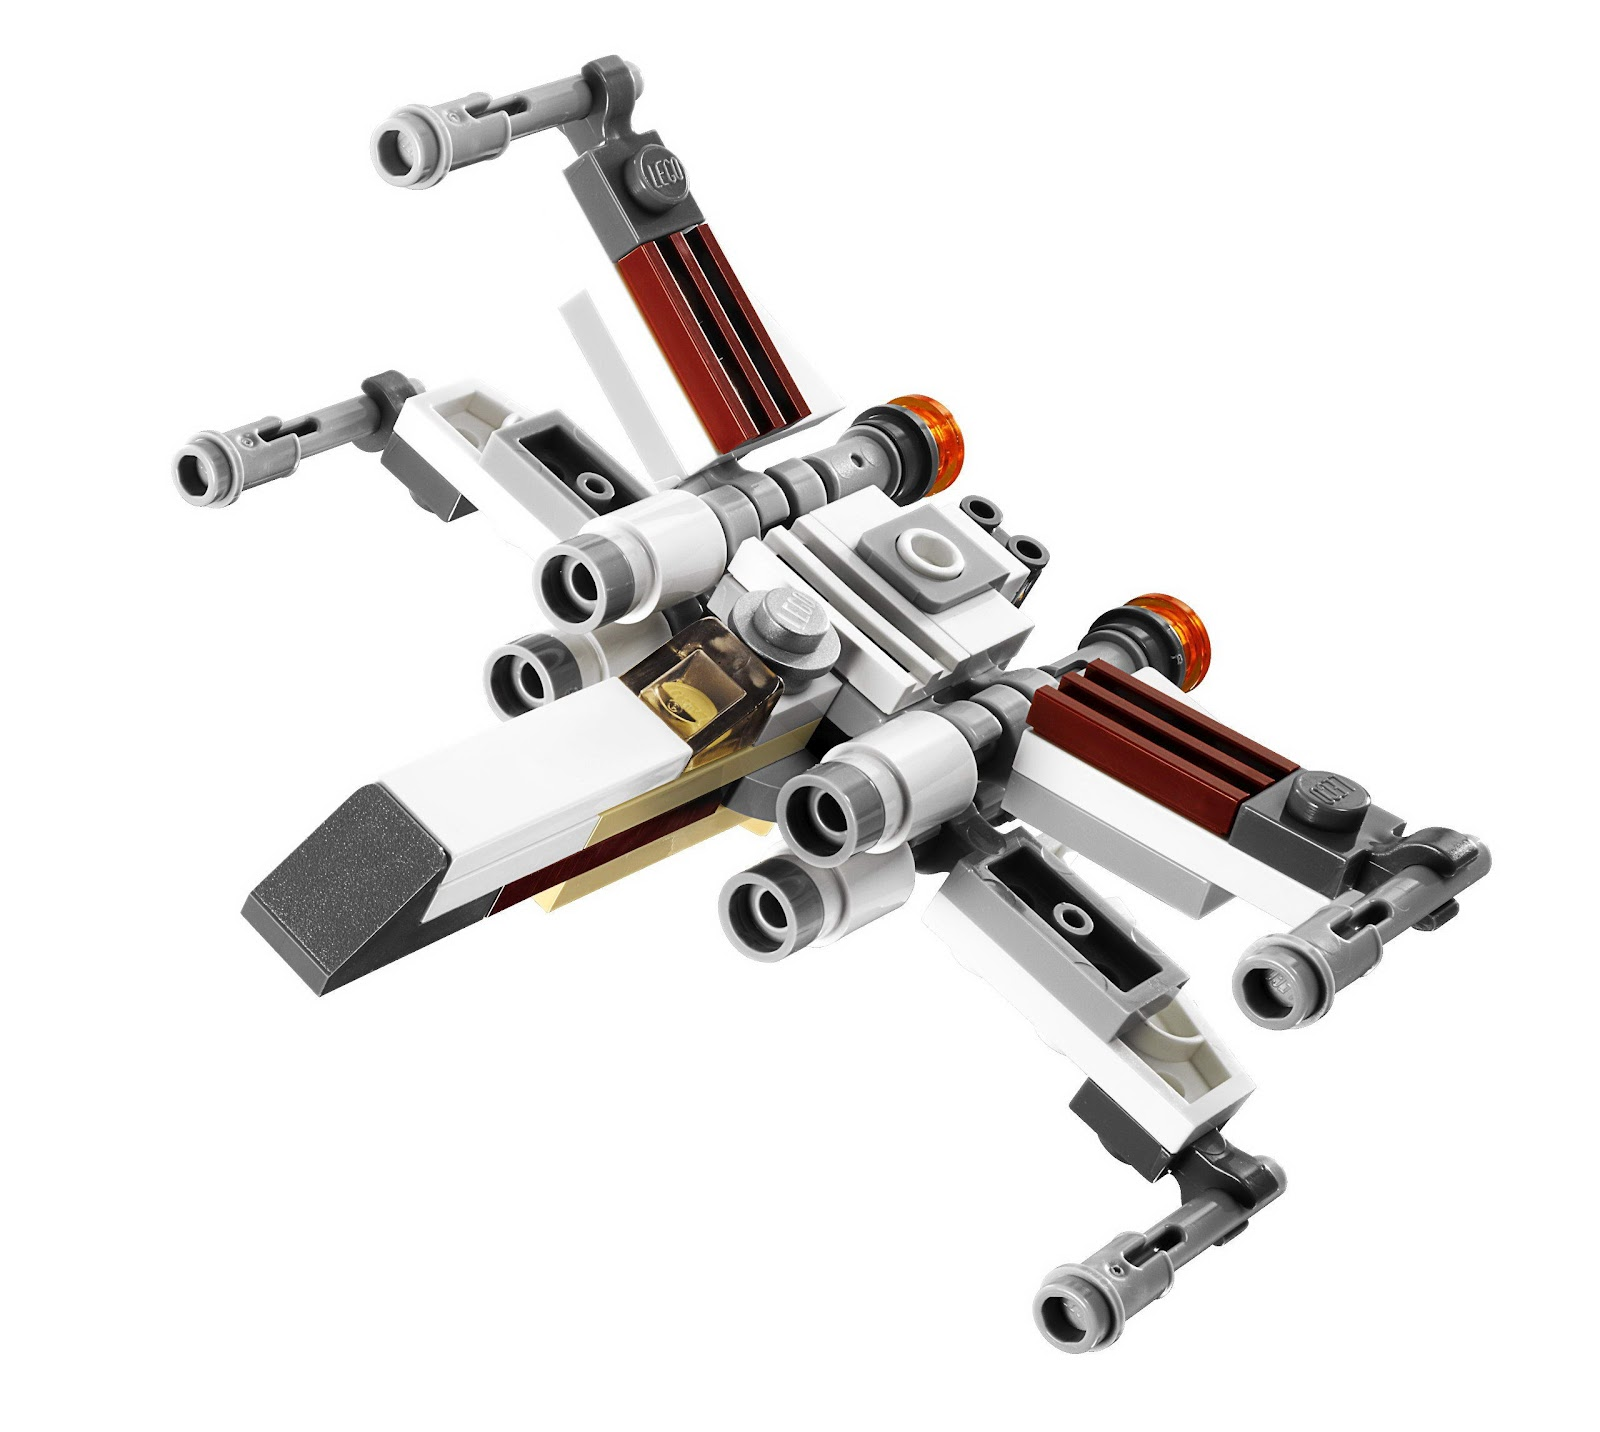 Lego Star Wars X Wing Starfighter: LEGO X-Wing Starfighter 9677